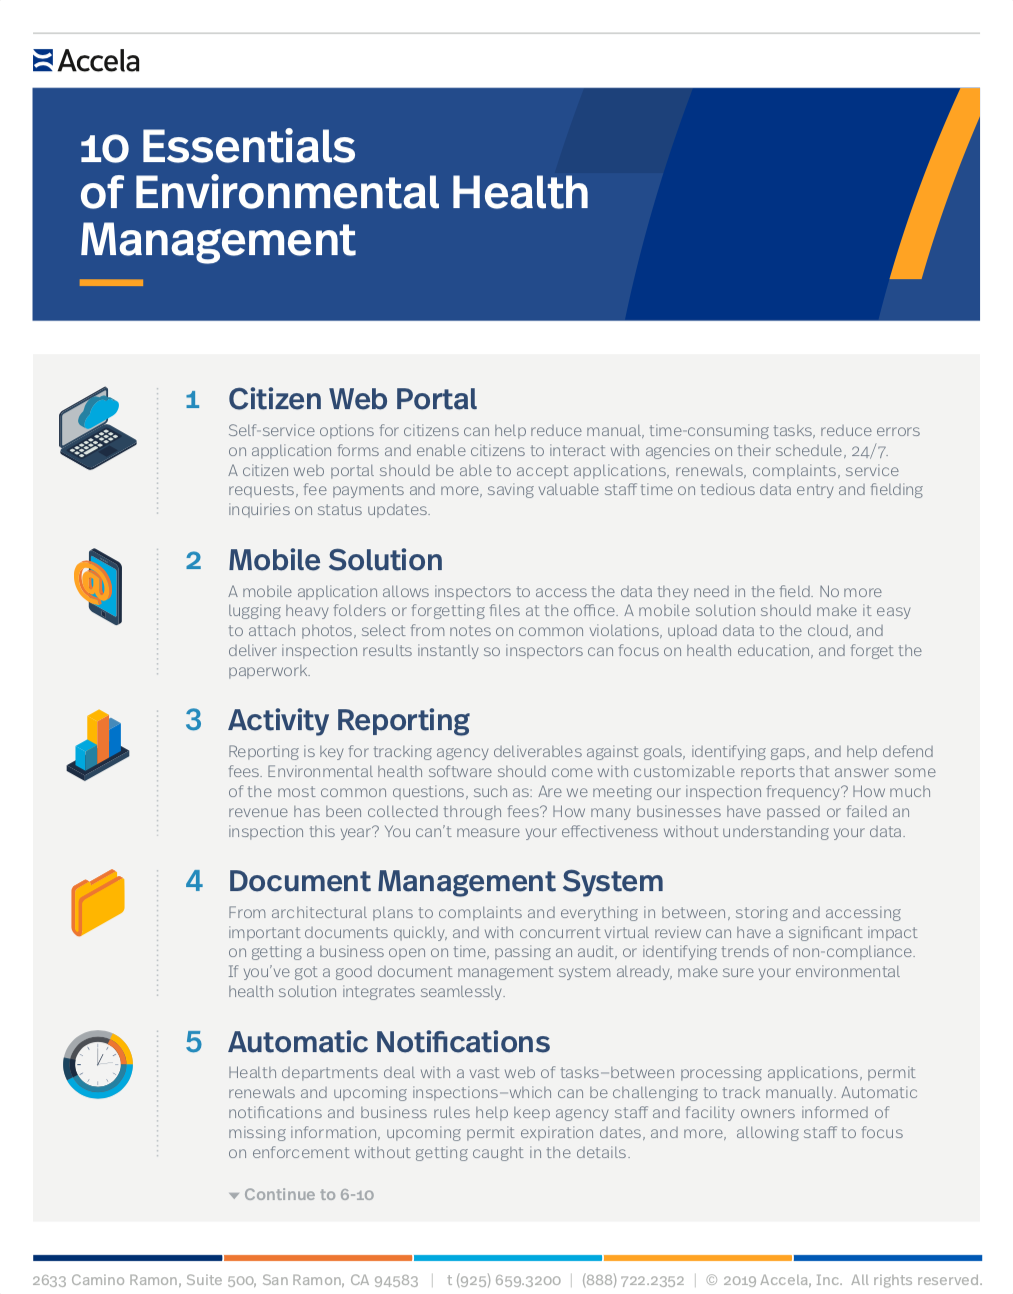 Top 10 Essentials of Environmental Health Management - Accela